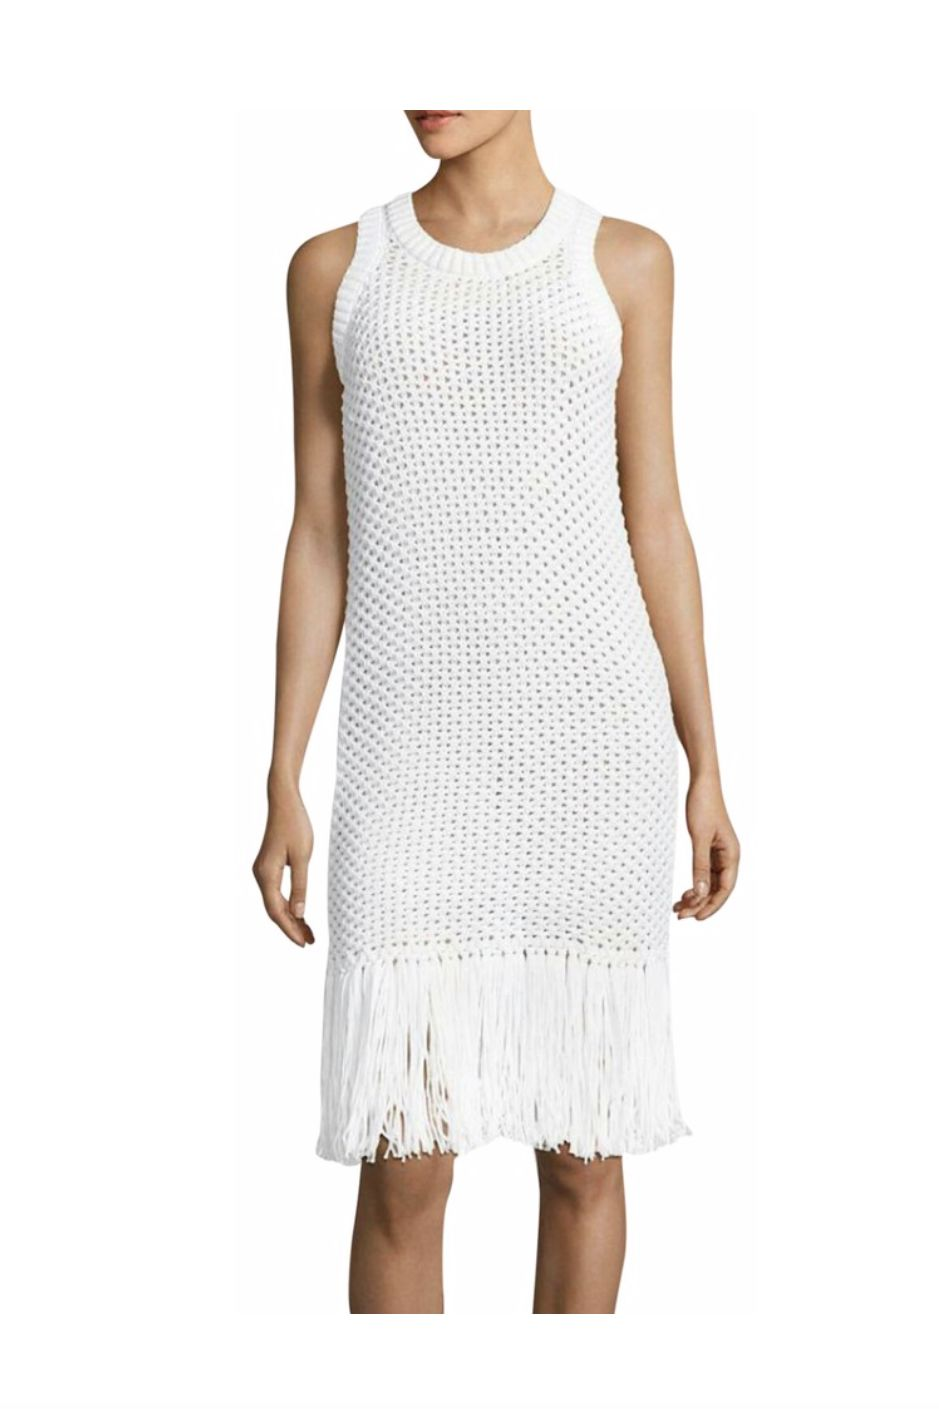 Michael Kors Fringe Trim Cotton-Blend Knit Dress 5 Preview Images